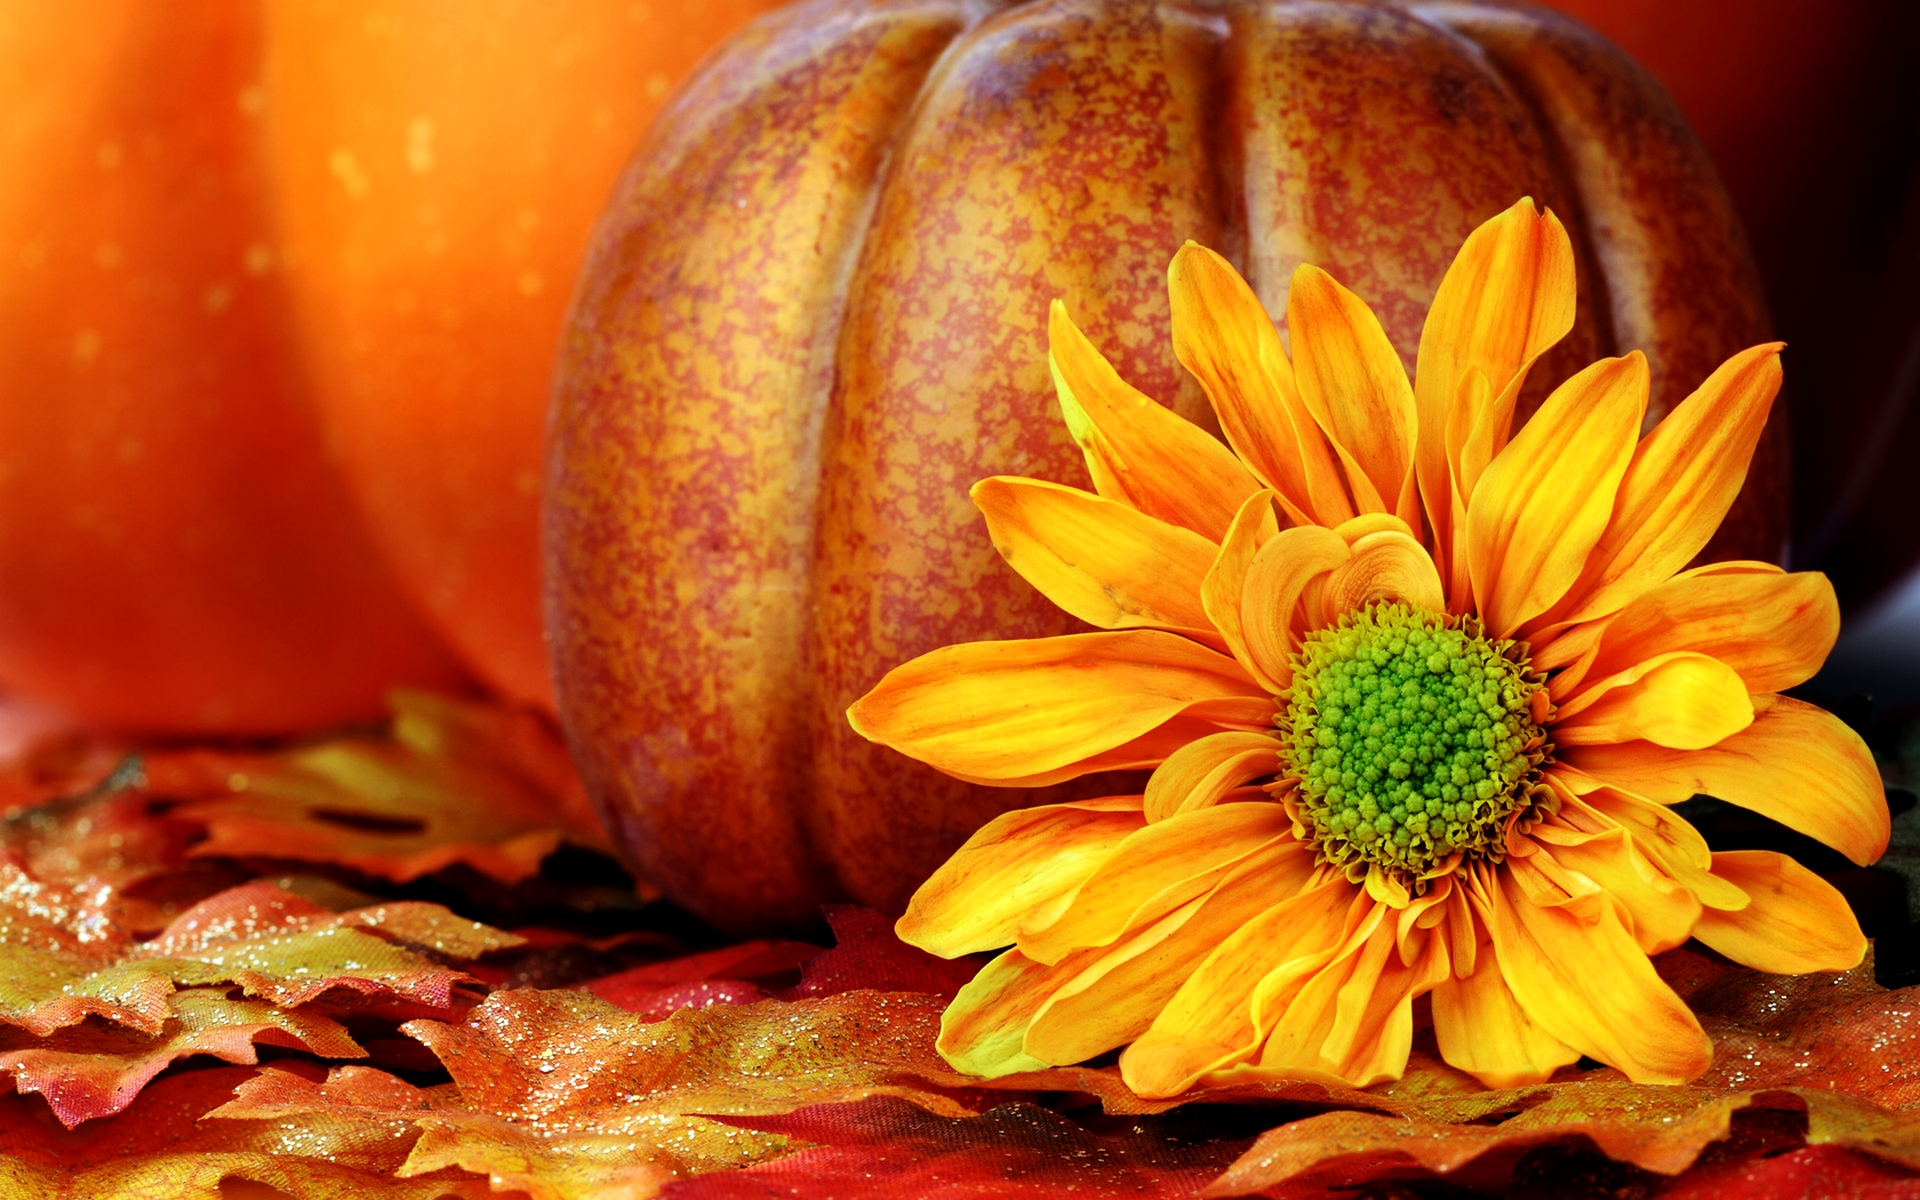 pumpkin wallpaper backgrounds hd wallpaper background desktop